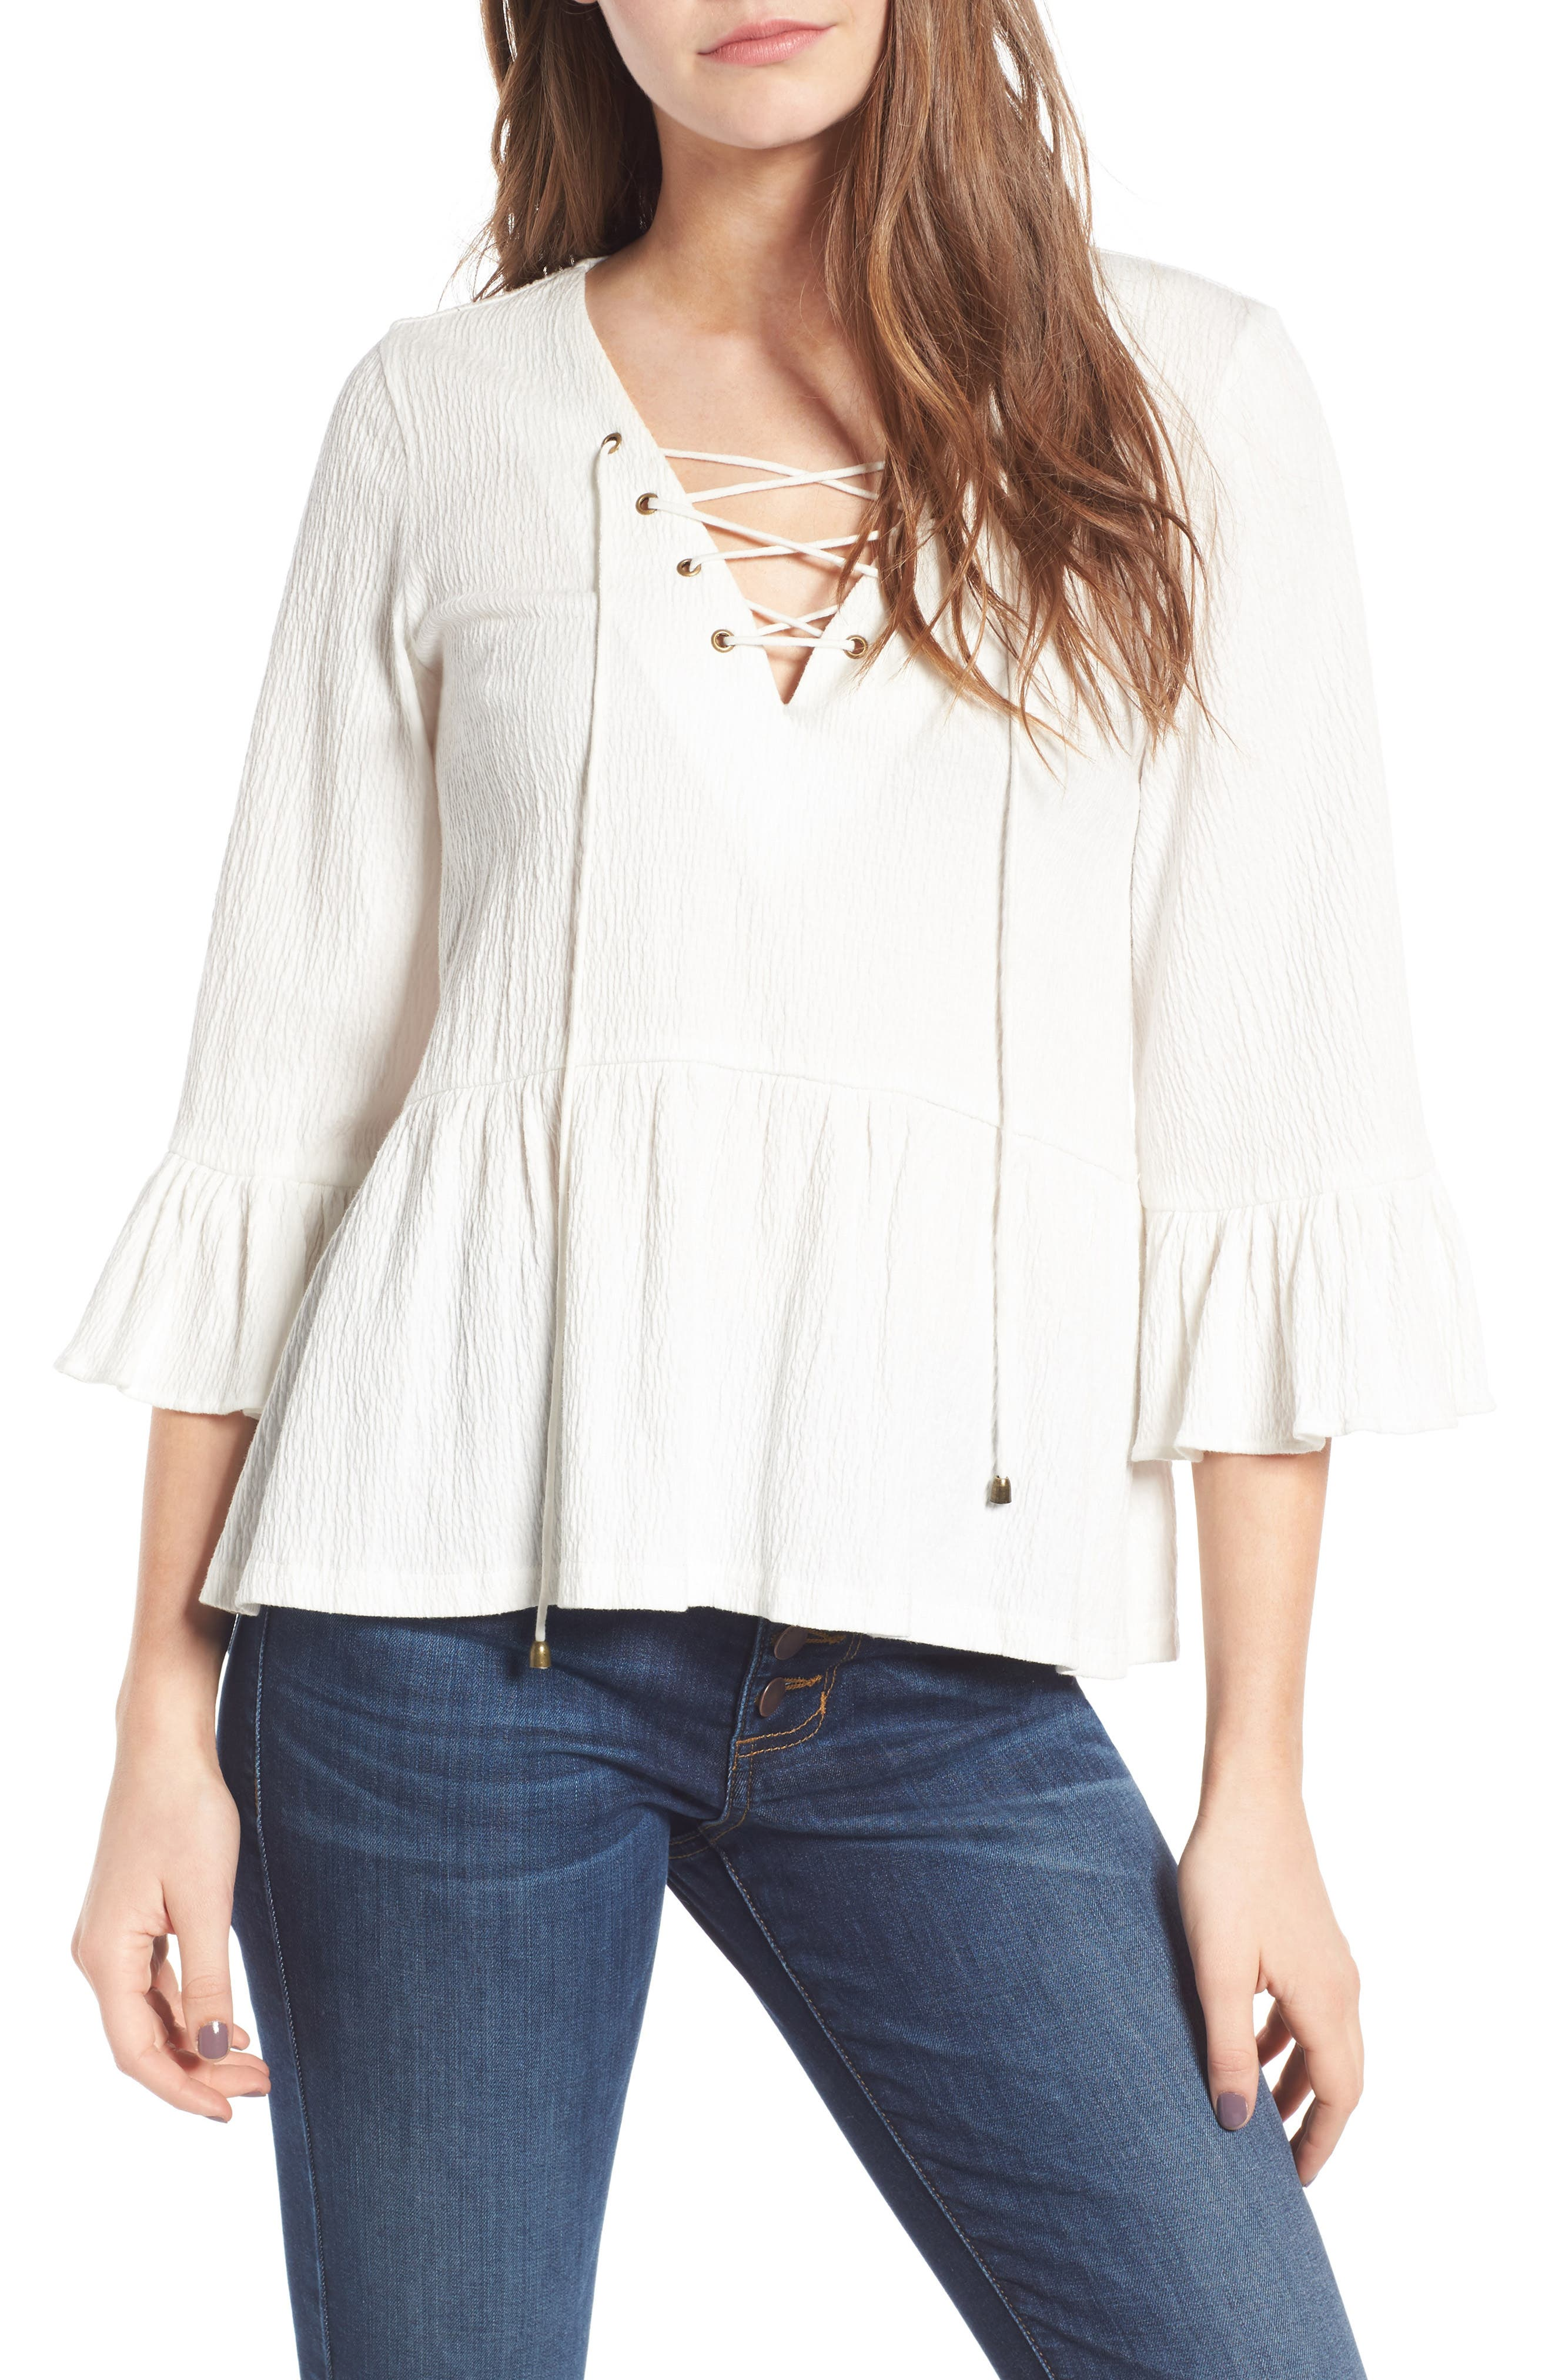 MOON RIVER Lace-Up Bell Sleeve Top